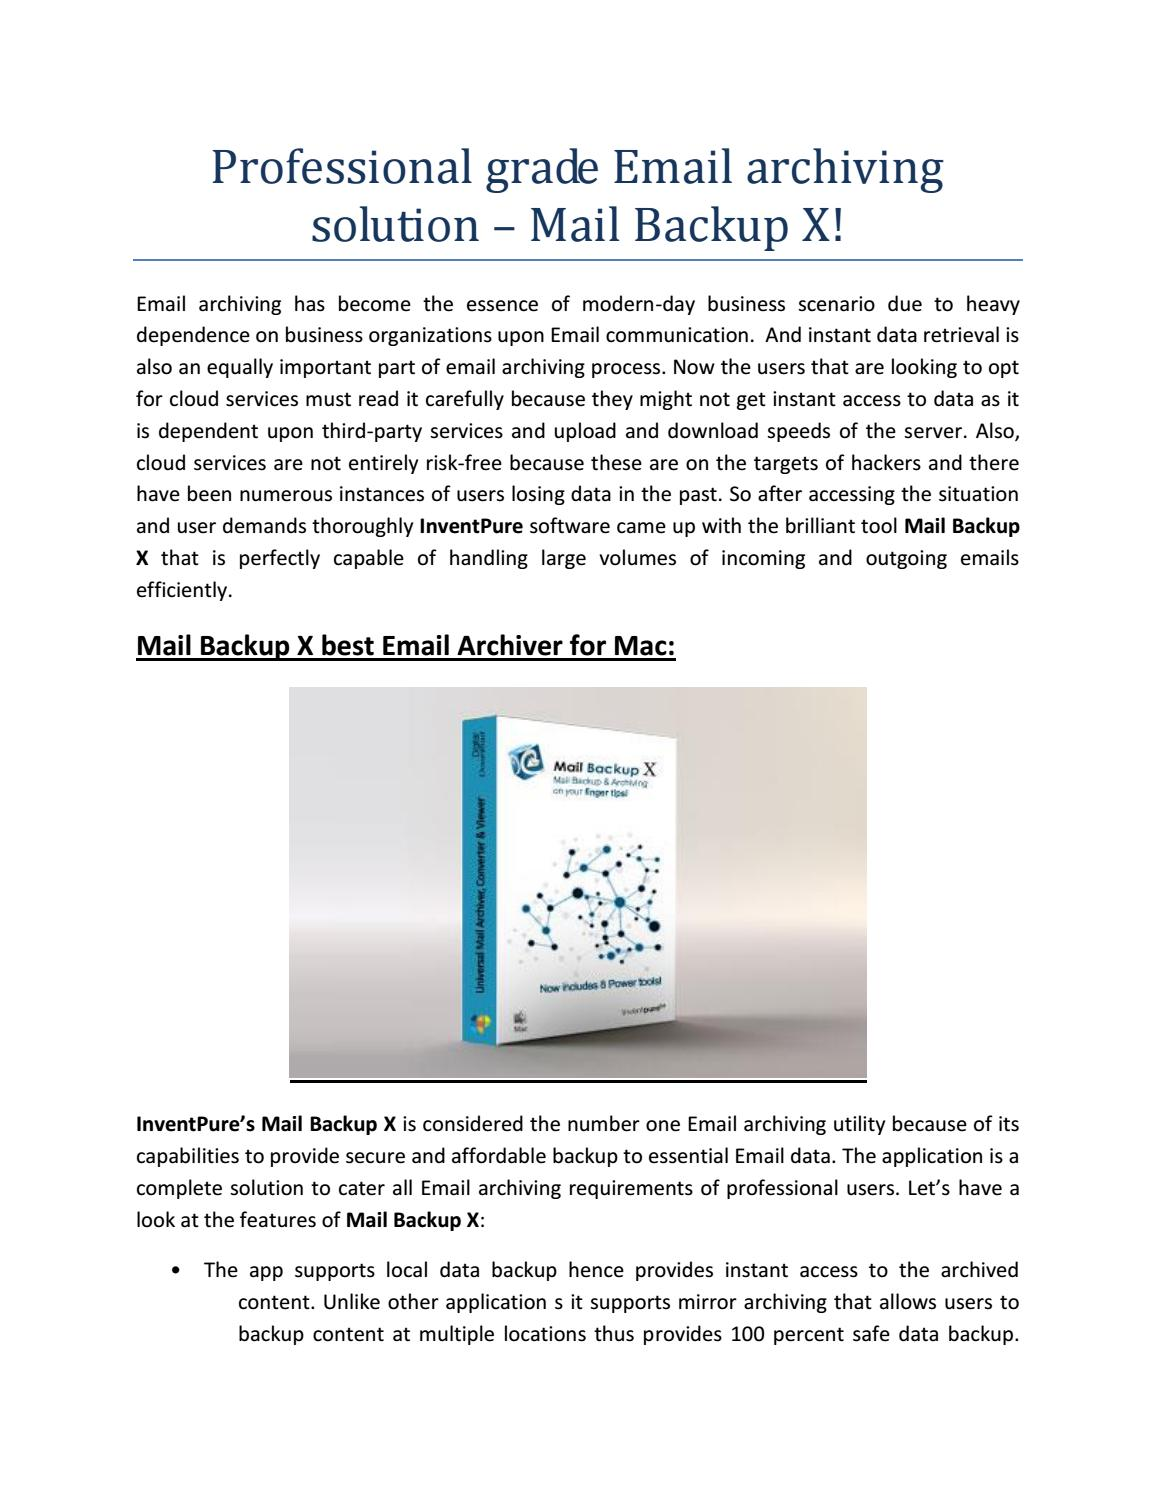 Professional grade email archiving solution – mail backup x